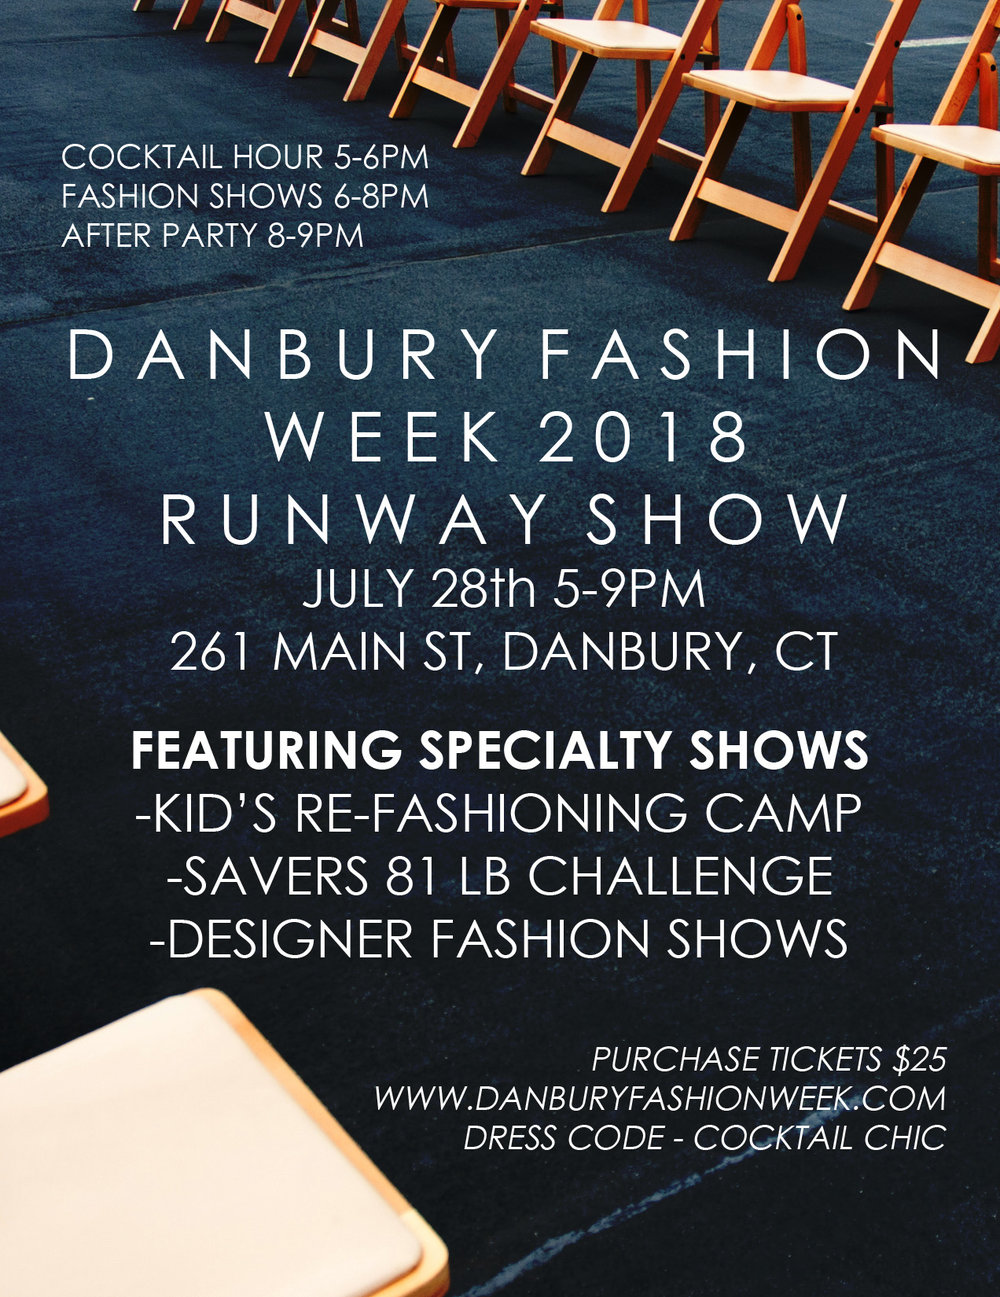 Saturday July 28th 5-9pm @261 Main St, Danbury, CT